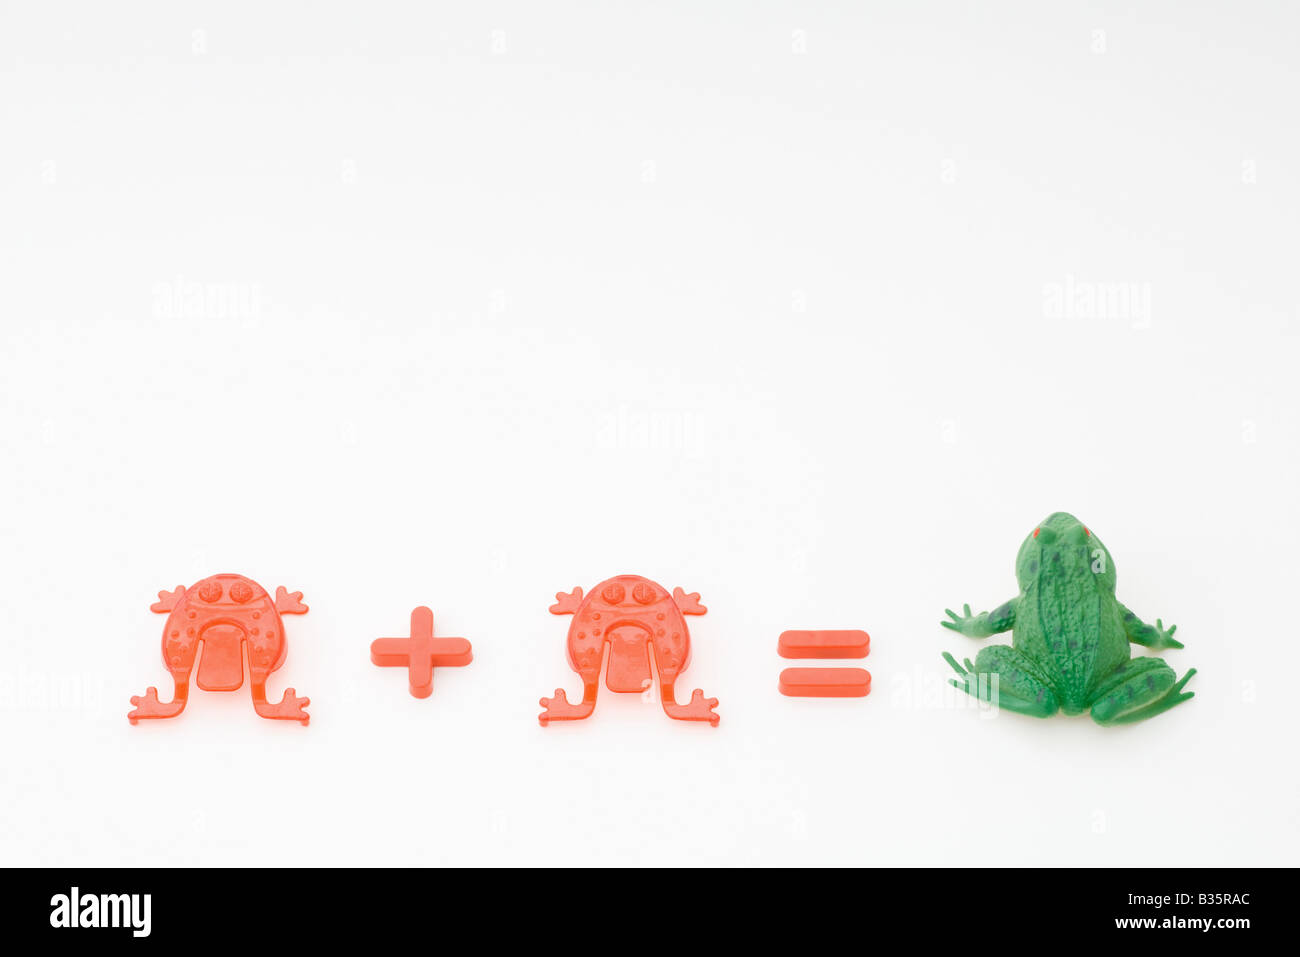 Red frog plus red frog equals green toad - Stock Image